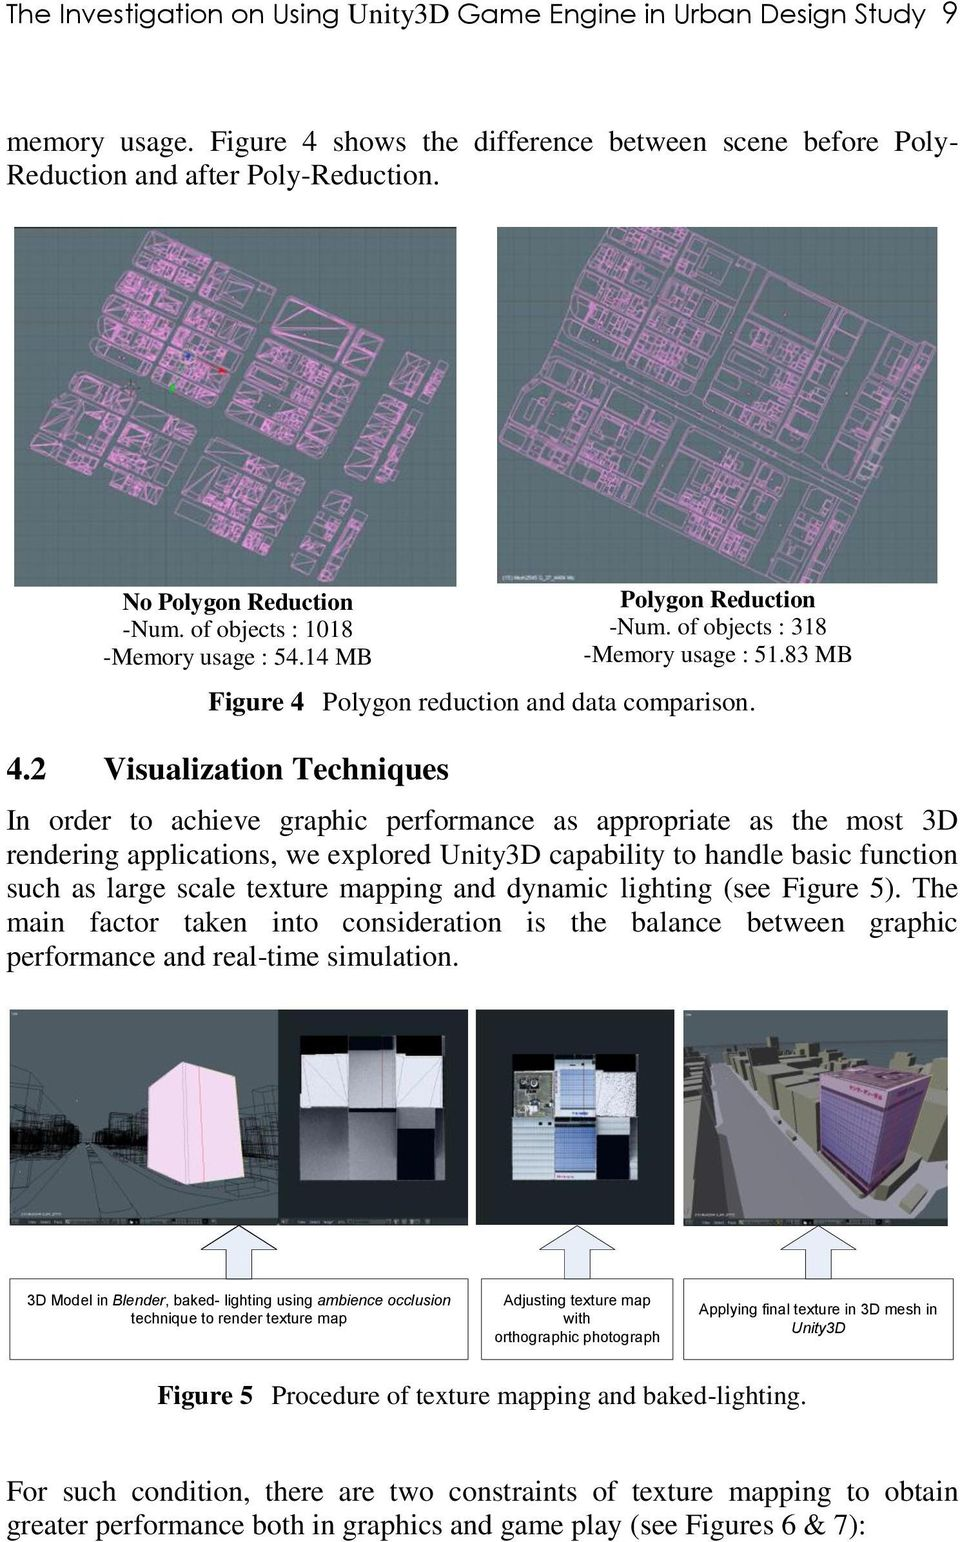 The Investigation on Using Unity3D Game Engine in Urban Design Study